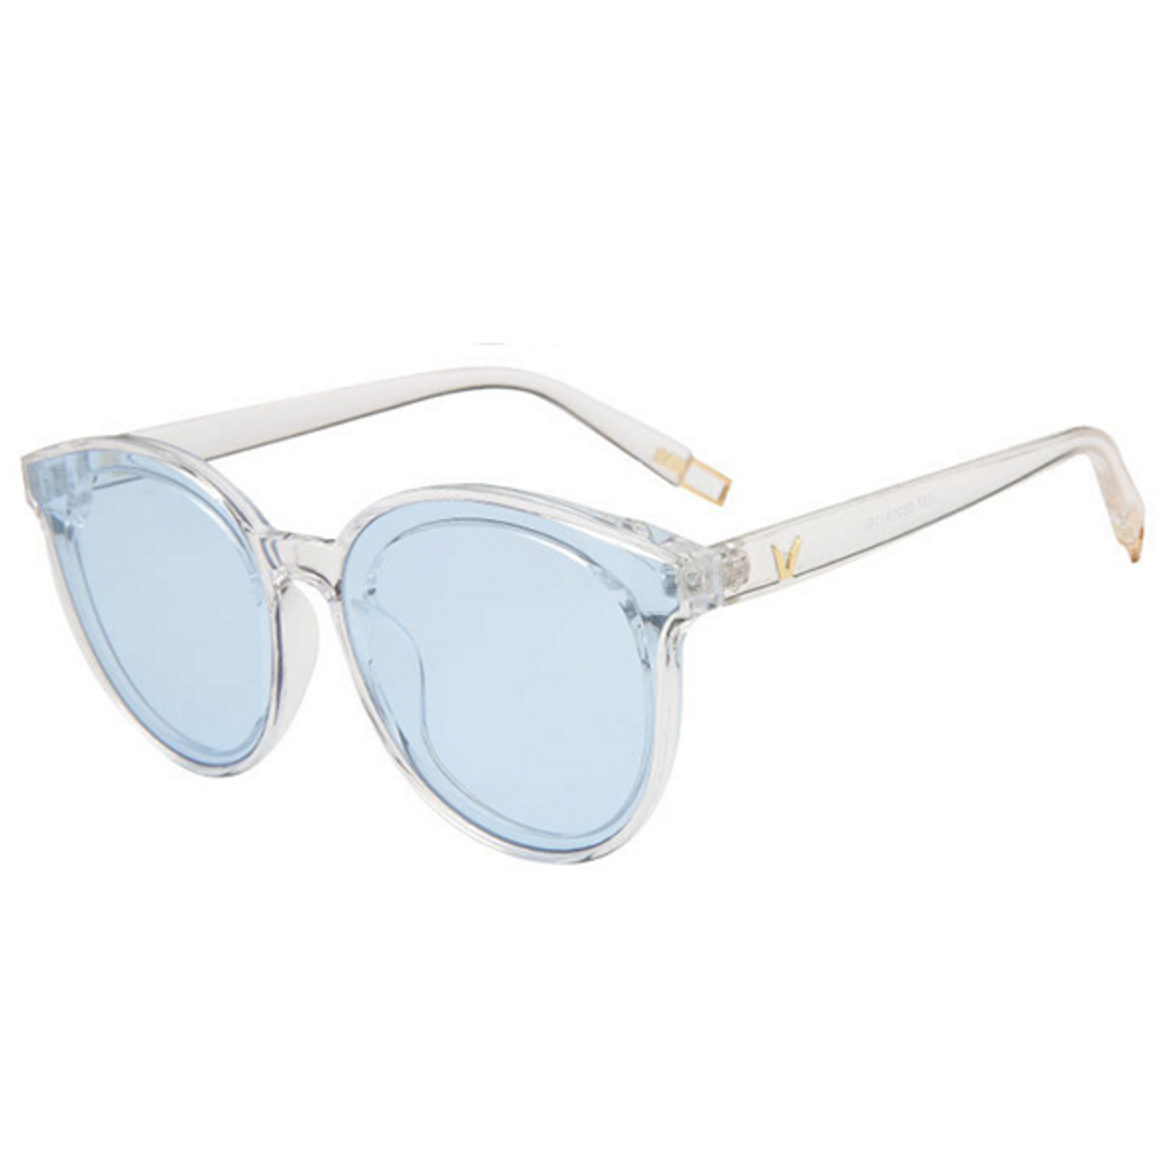 af9bb2a2360 Glasses have clear blue lenses and frame sunglasses womens mens ray ban  ebay black round india